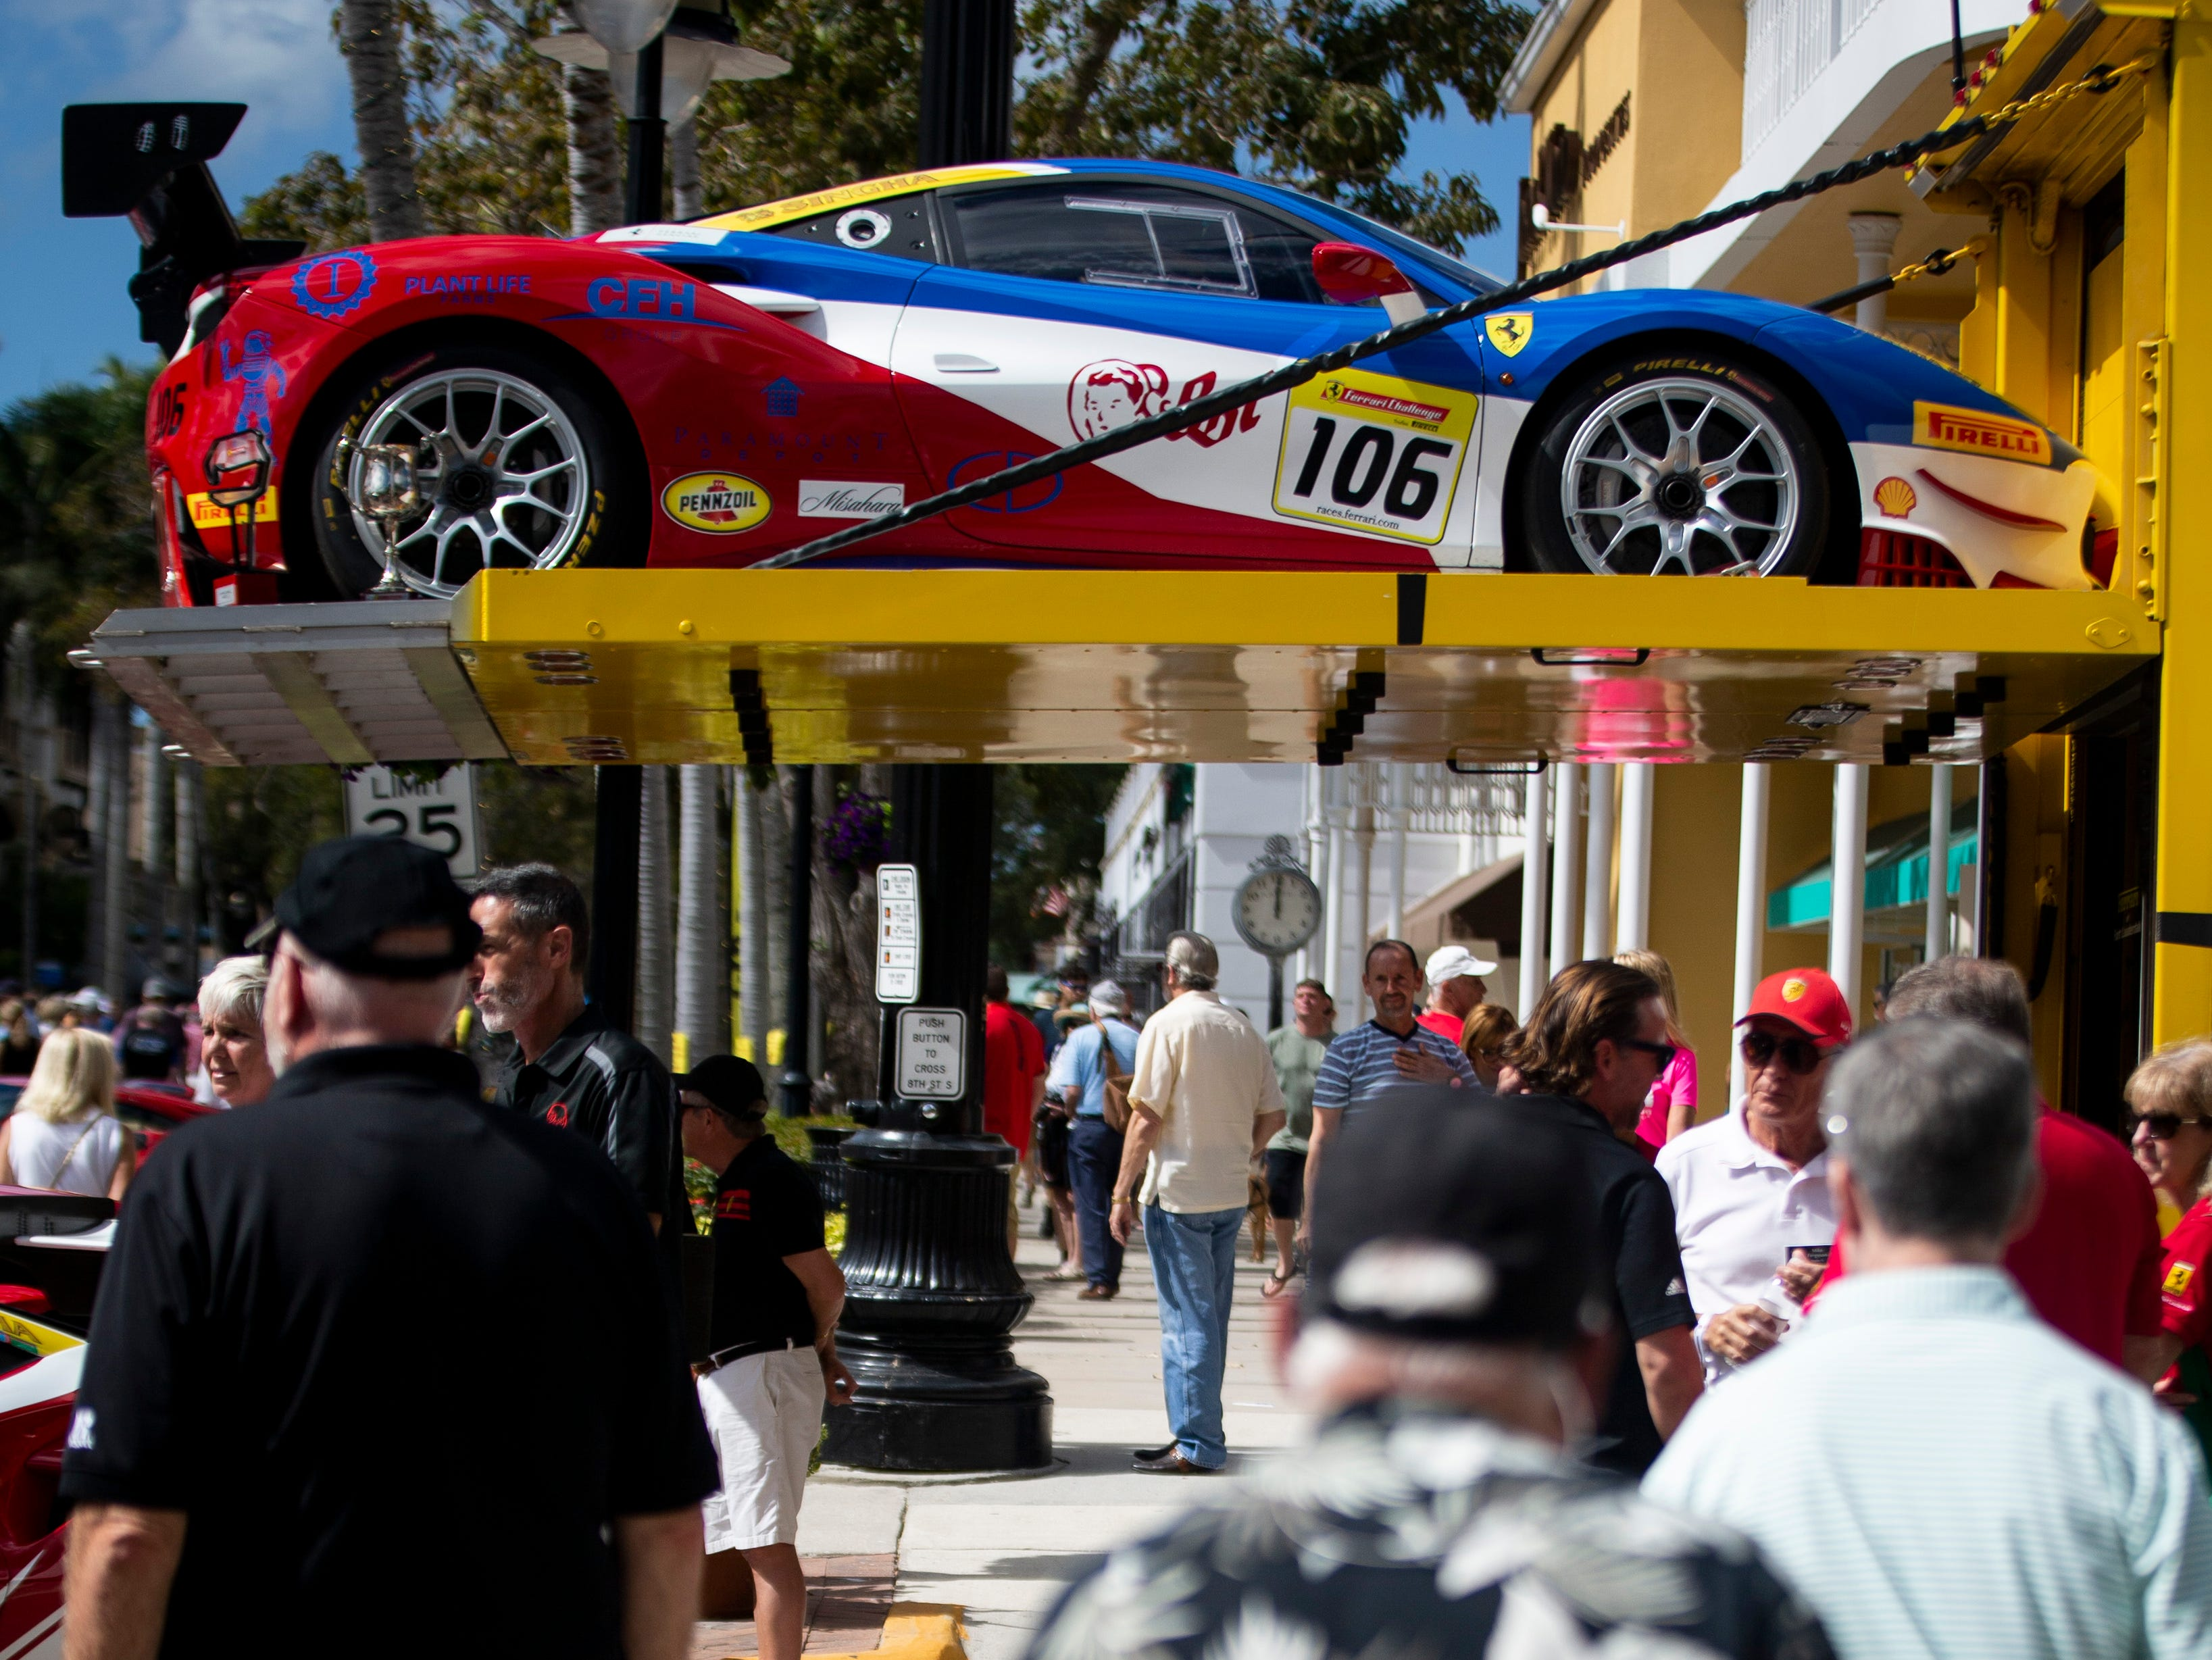 A Ferrari Challenge sits above the crowd during the 15th annual Cars on 5th event, organized by the Naples Chapter of the Ferrari Club of America, on 5th Avenue South in Naples, on Saturday, February 9, 2019. Proceeds from the event go to St. MatthewÕs House, which helps people who are homeless, hungry, or recovering from substance abuse.